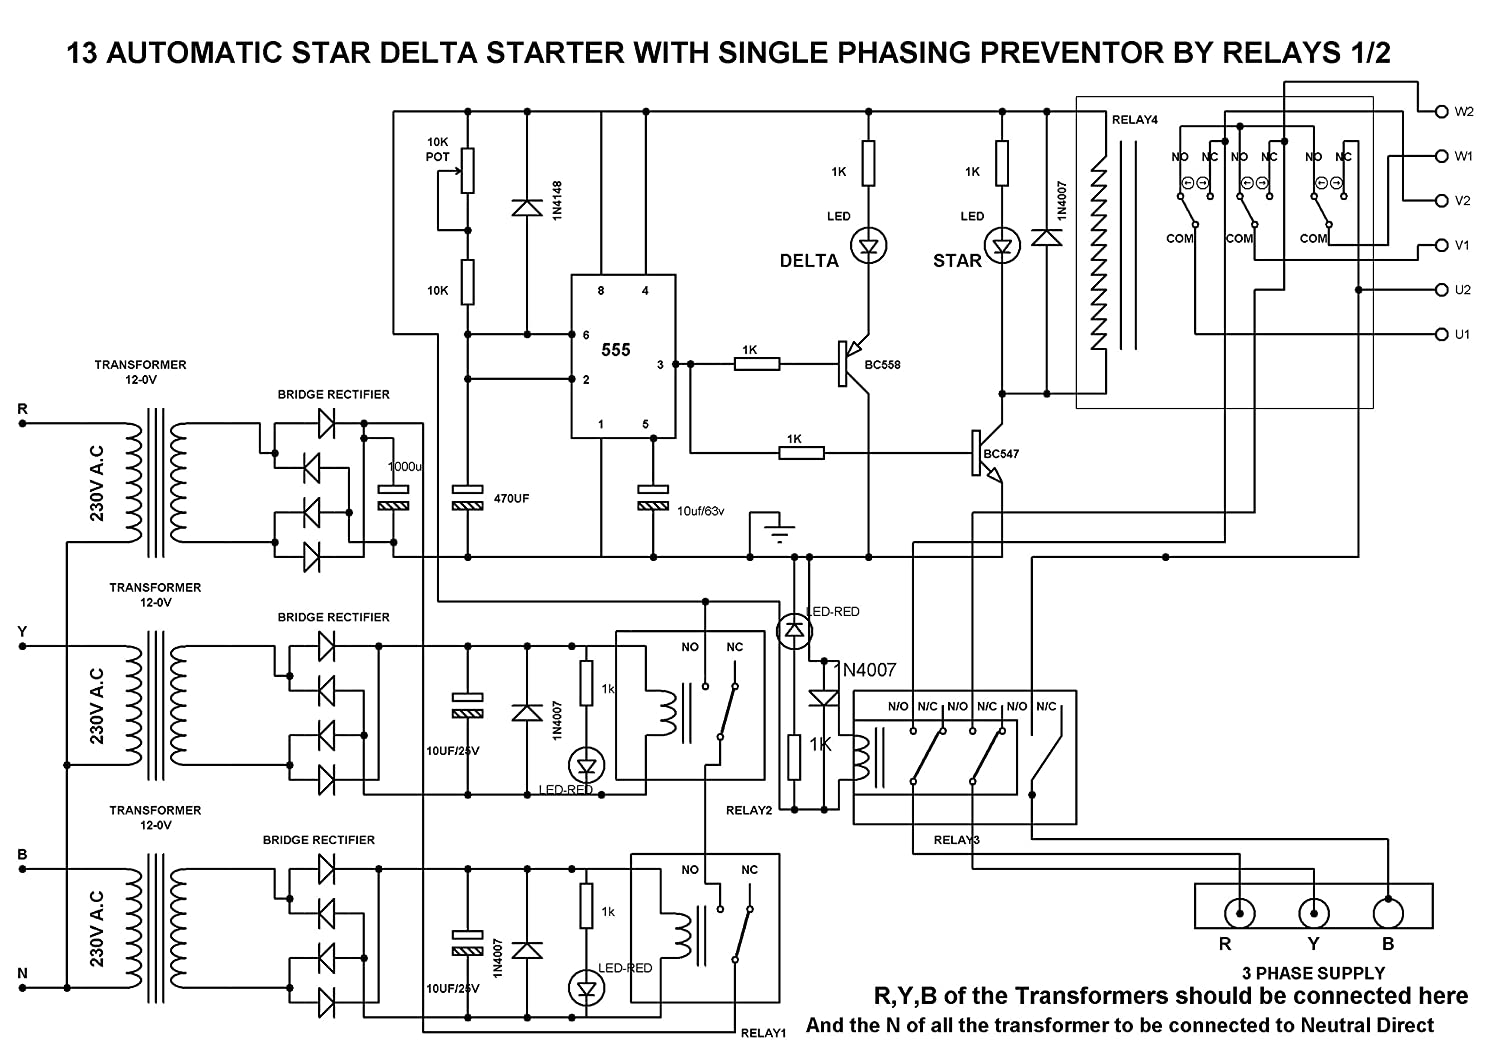 Buy Edgefx Automatic Star Delta Starter Using Relays And Adjustable 1 Control Wiring Diagram Electronic Timer For Induction Motor Diy Kit Engineering Diploma Online At Low